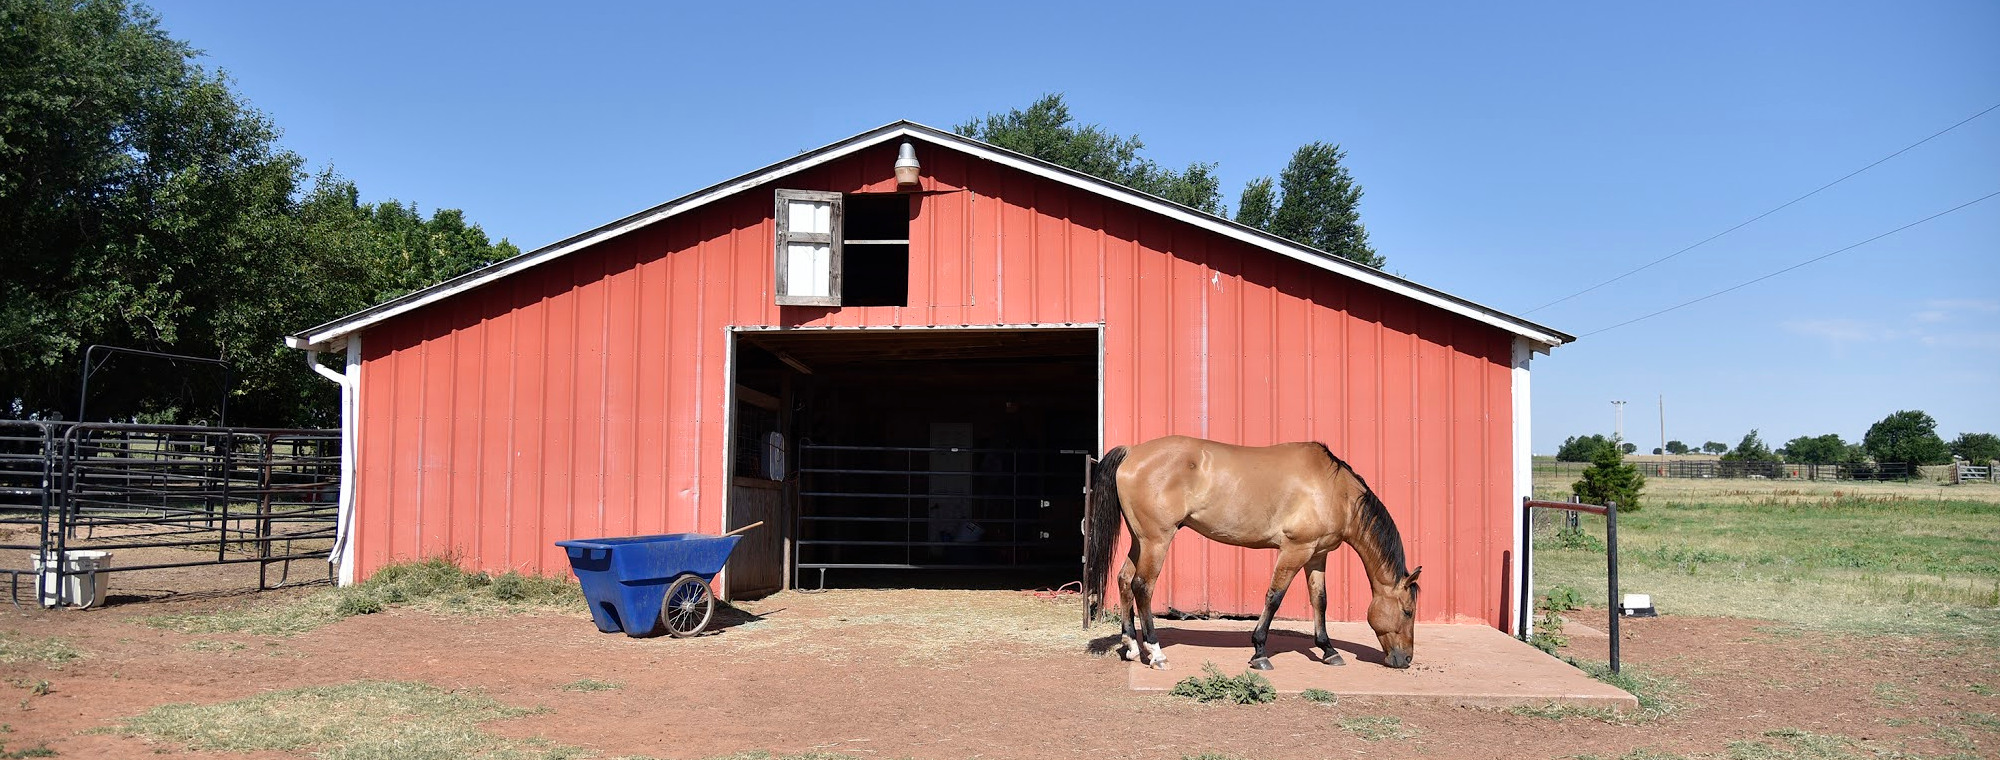 A brown horse stands in front of a red barn.